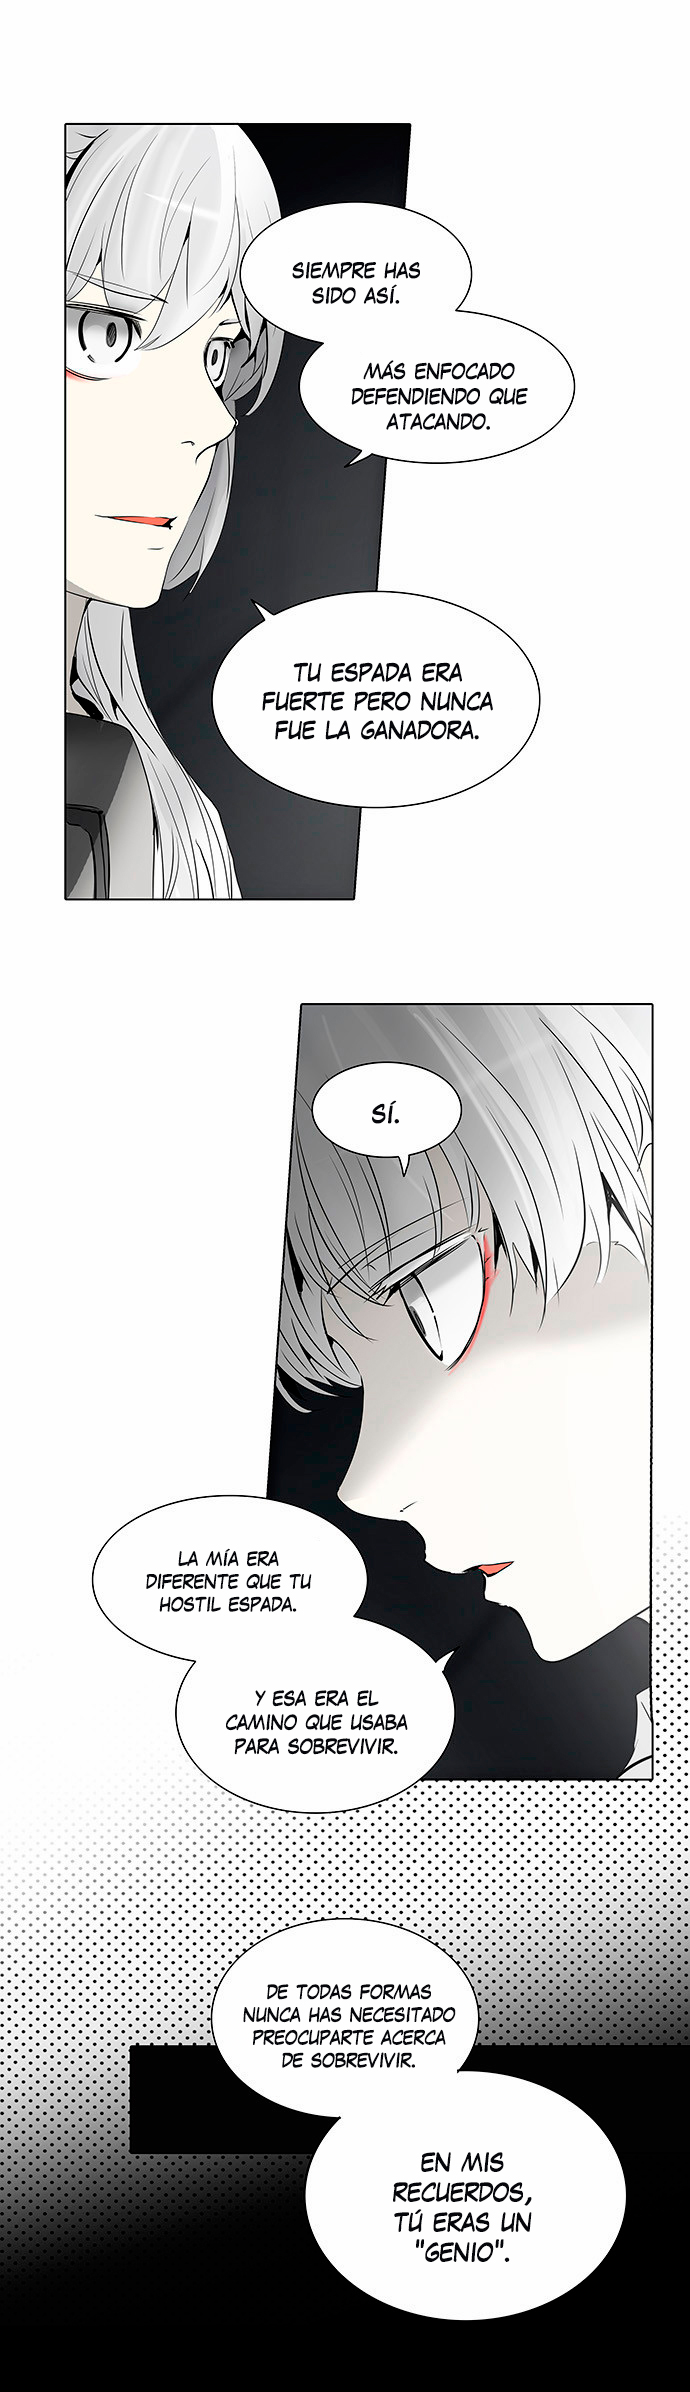 http://c5.ninemanga.com/es_manga/21/149/434083/10826cbc2c4de2a2e27d2883929c5805.jpg Page 8